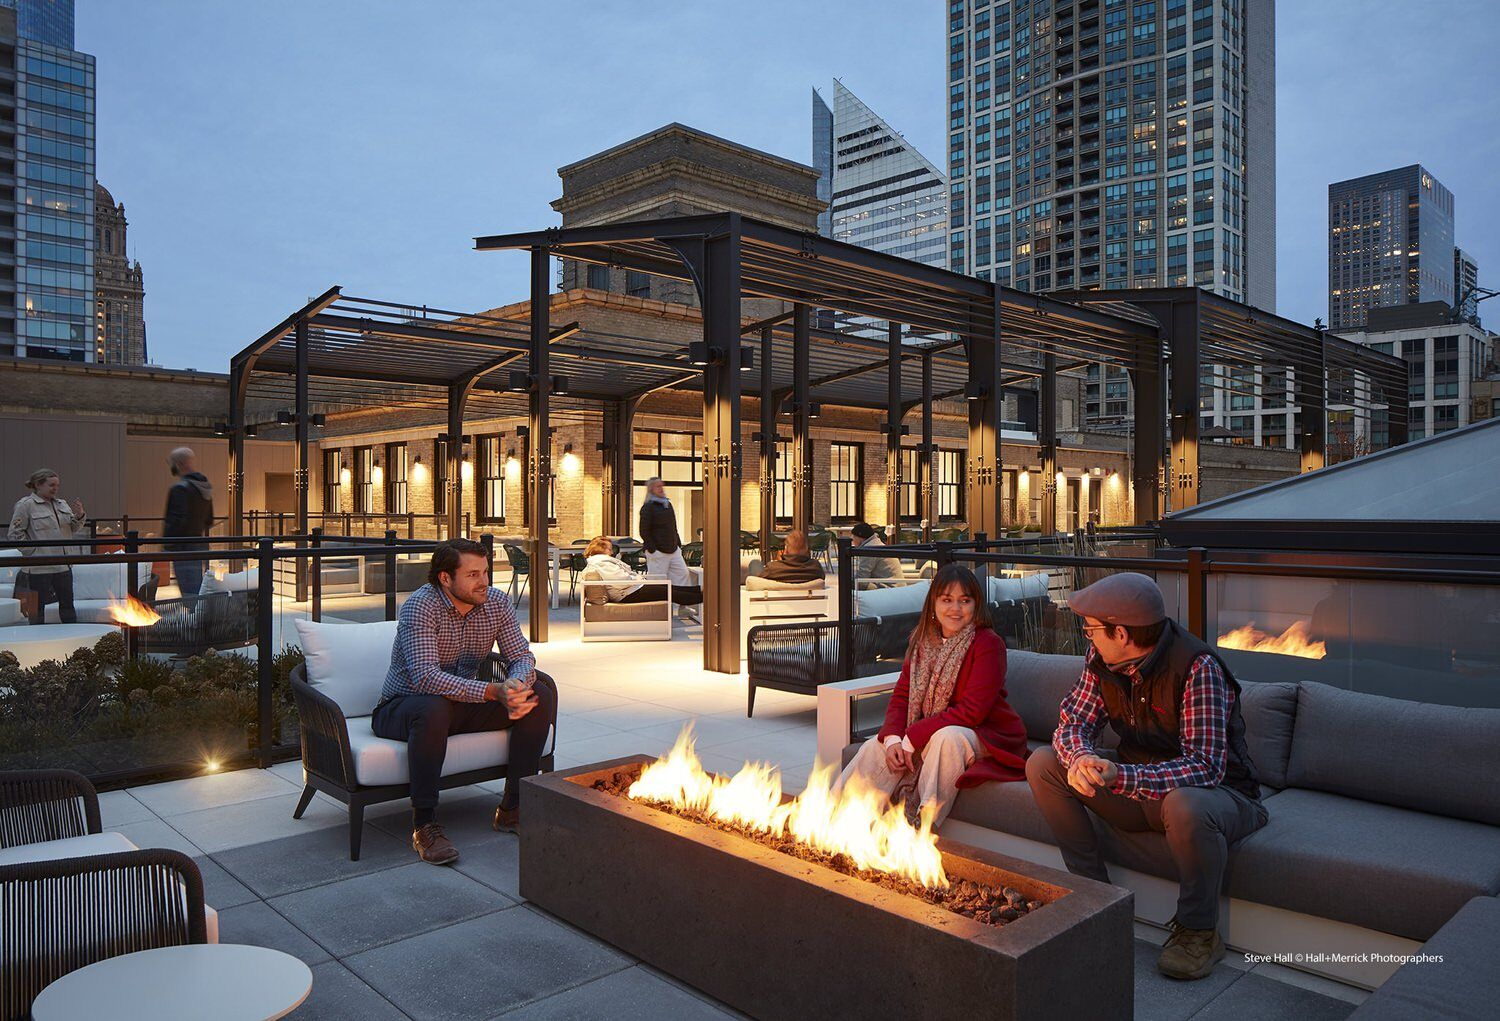 A group of people are sitting around a fire pit outdoors on the top of a roof in a city area.